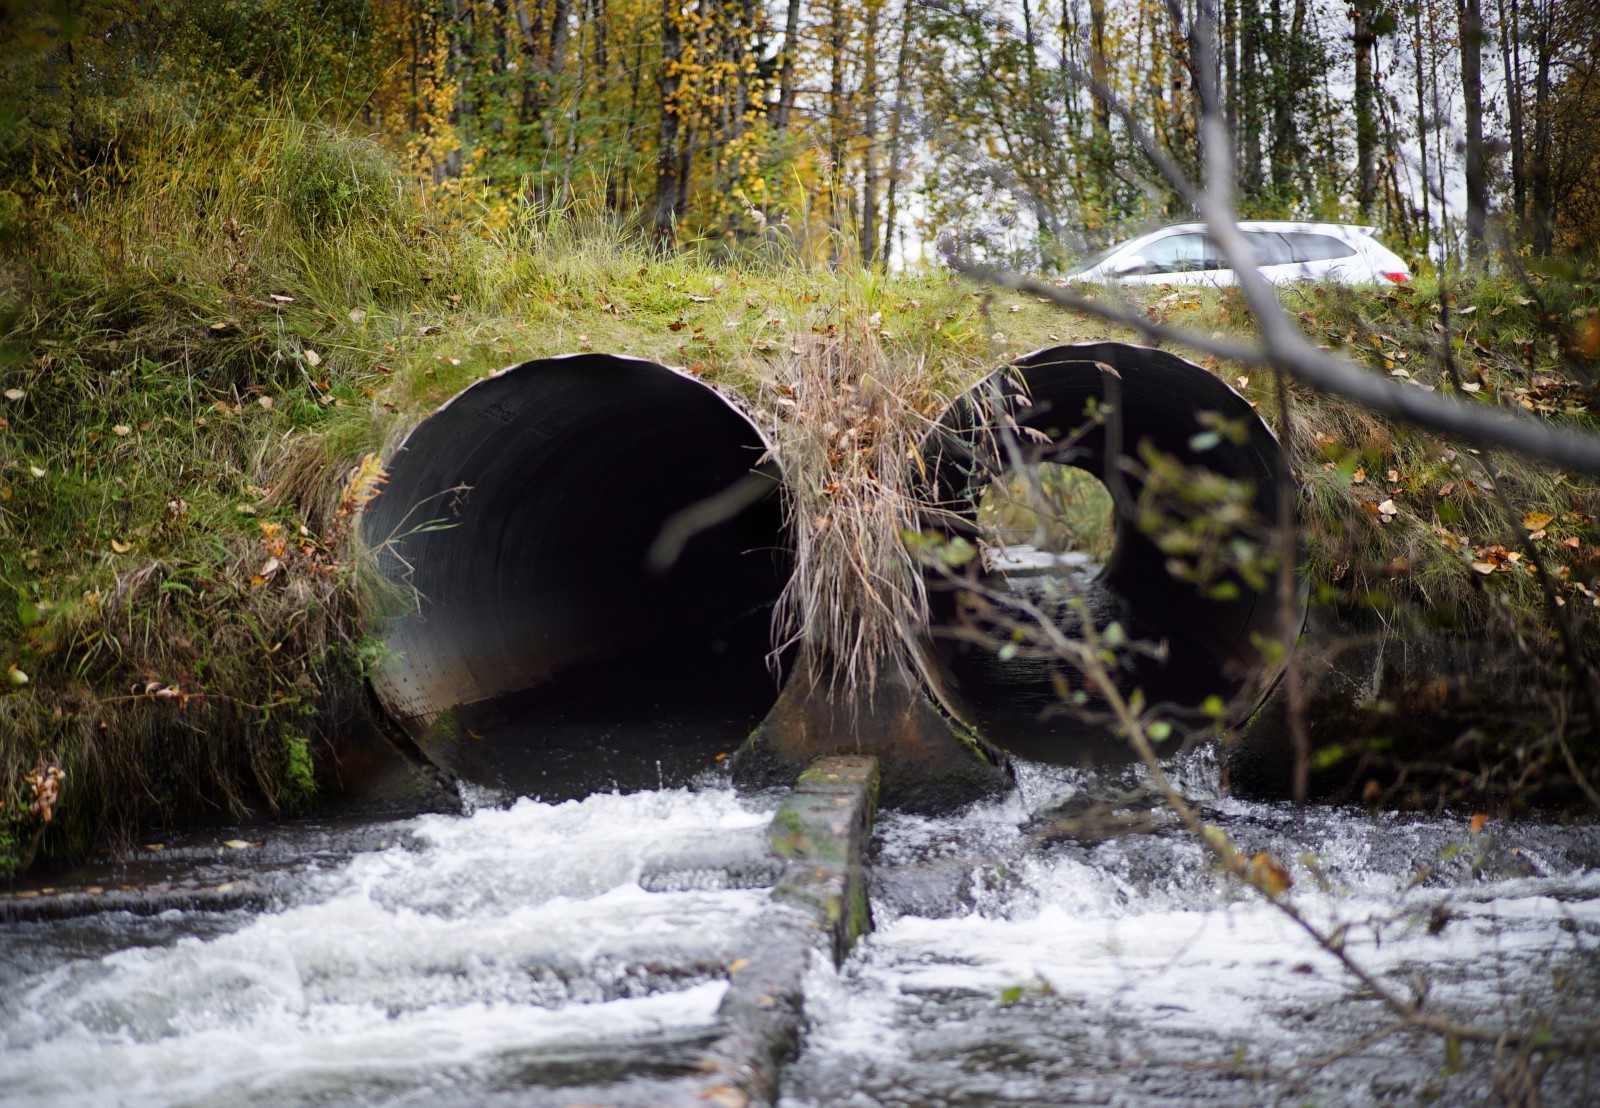 rocky road culvert woes not the ice cream conservation in